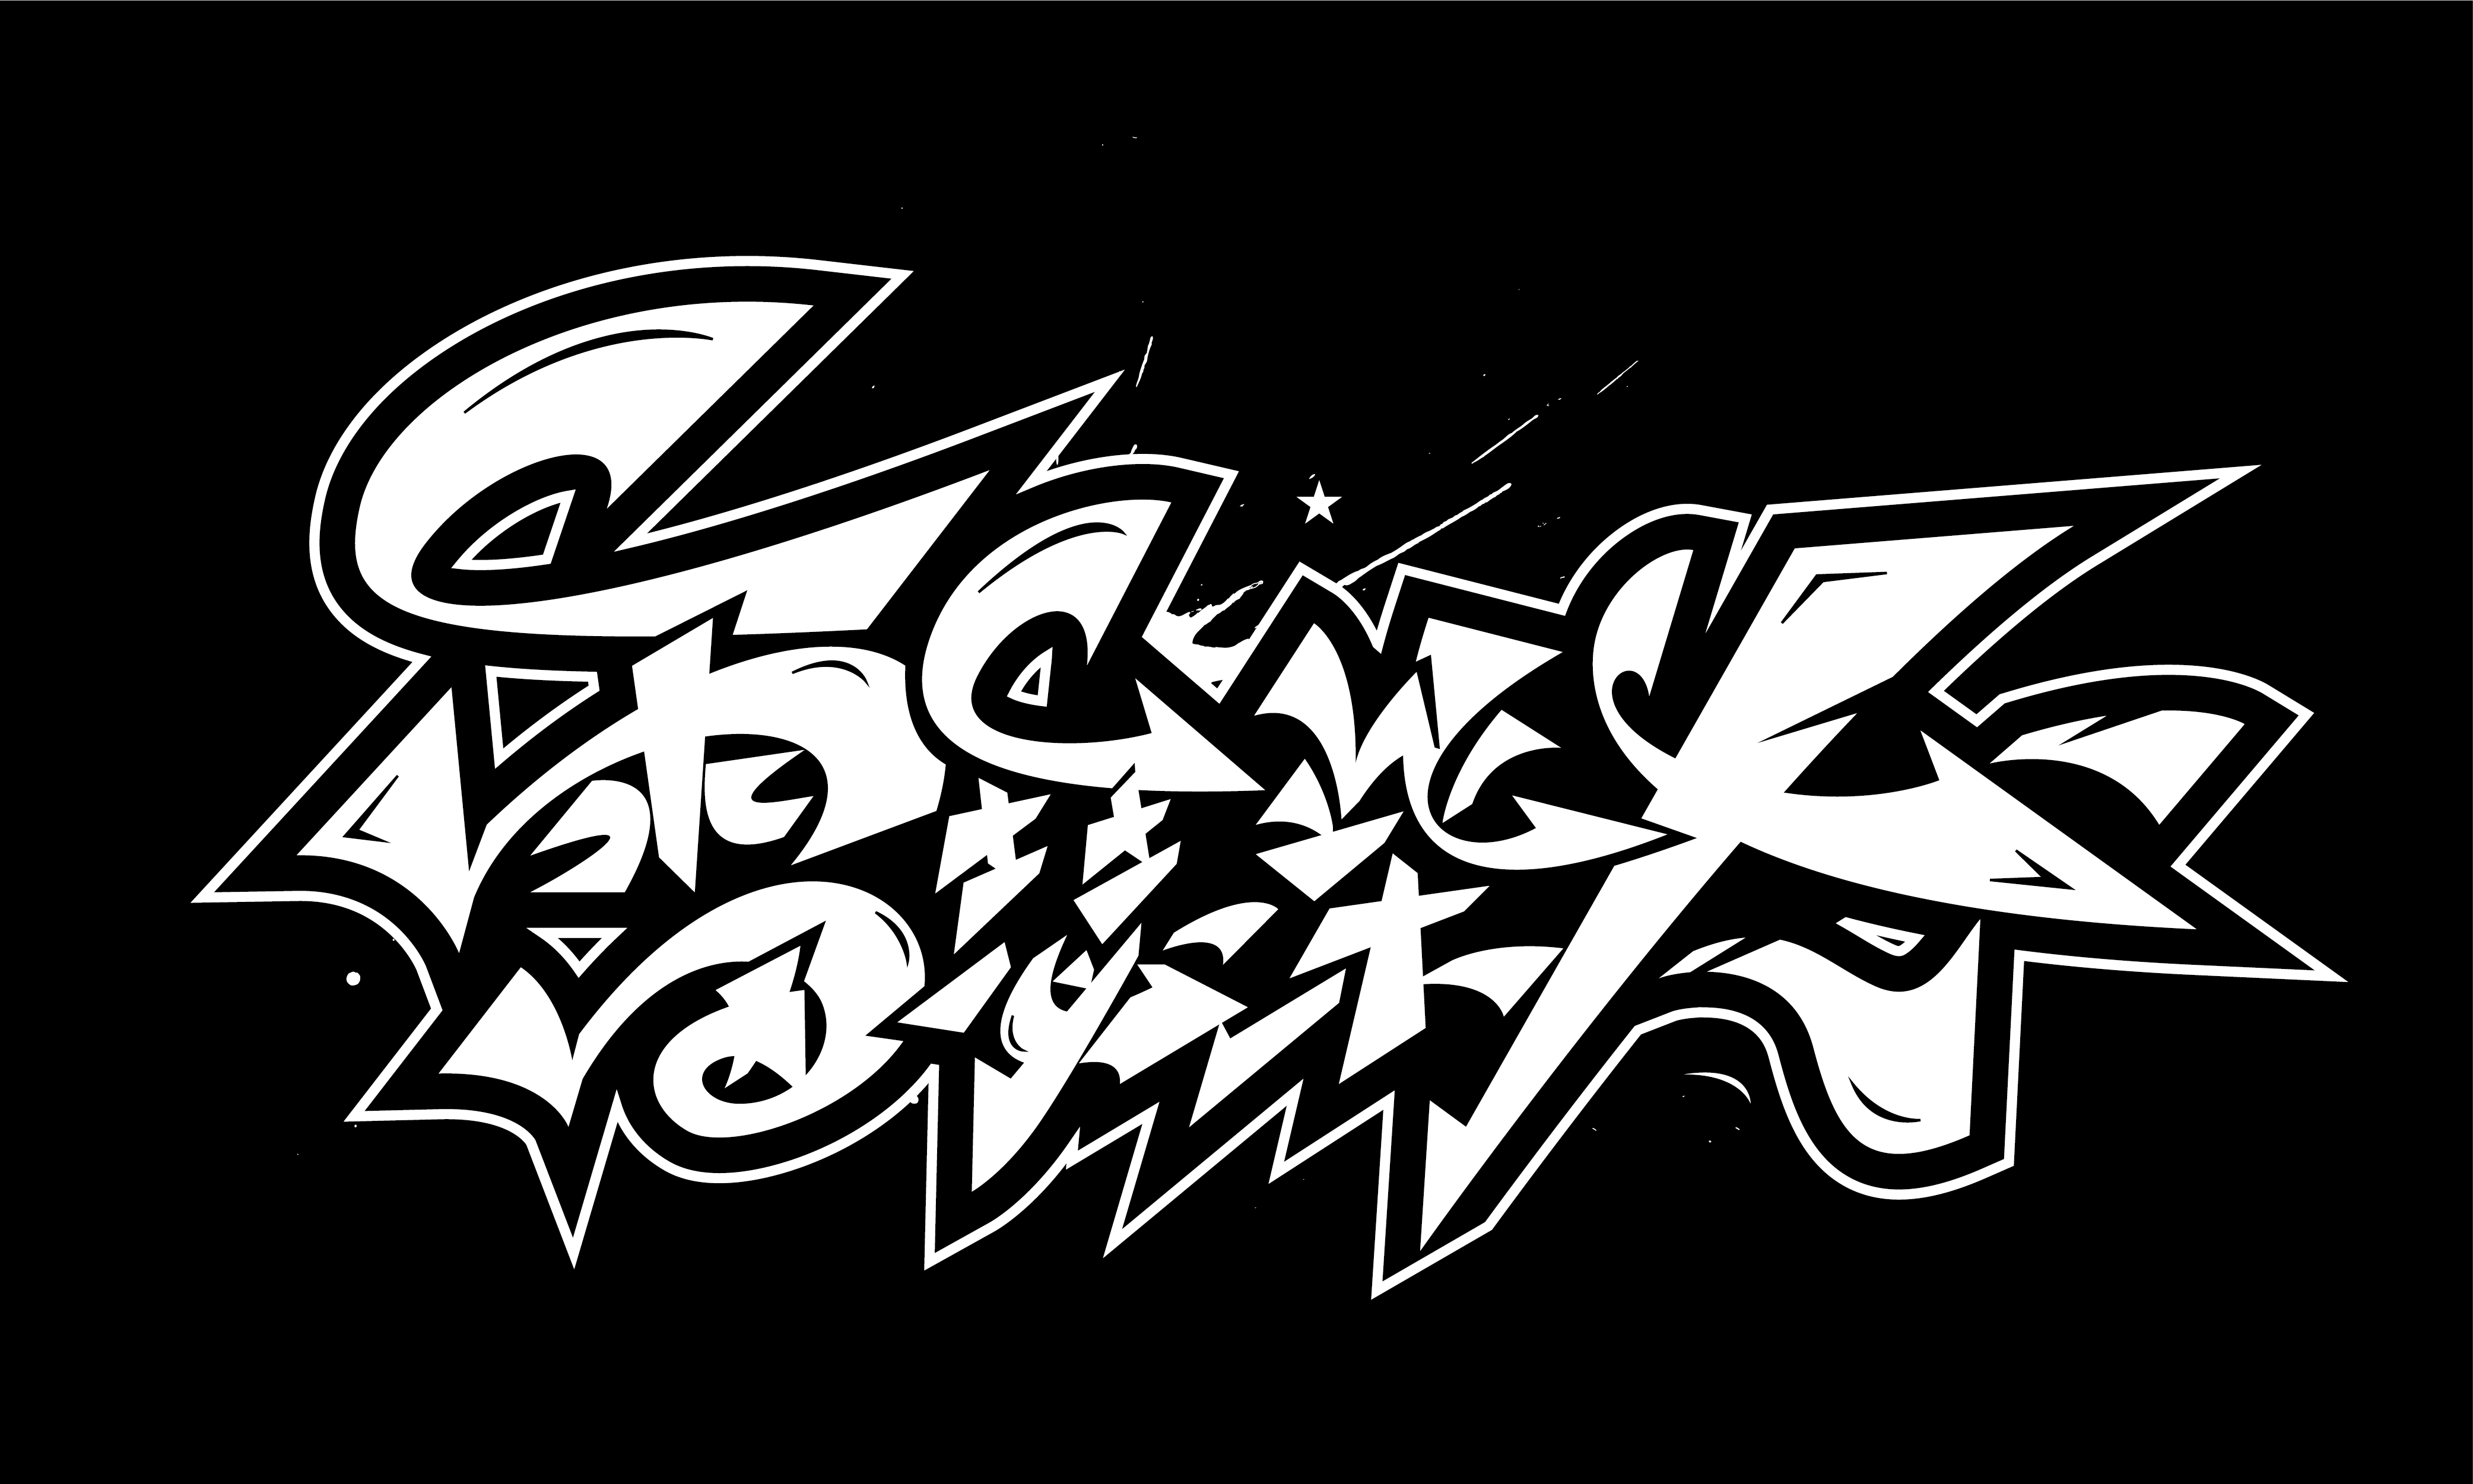 Daily update of hand-painted graffiti fonts